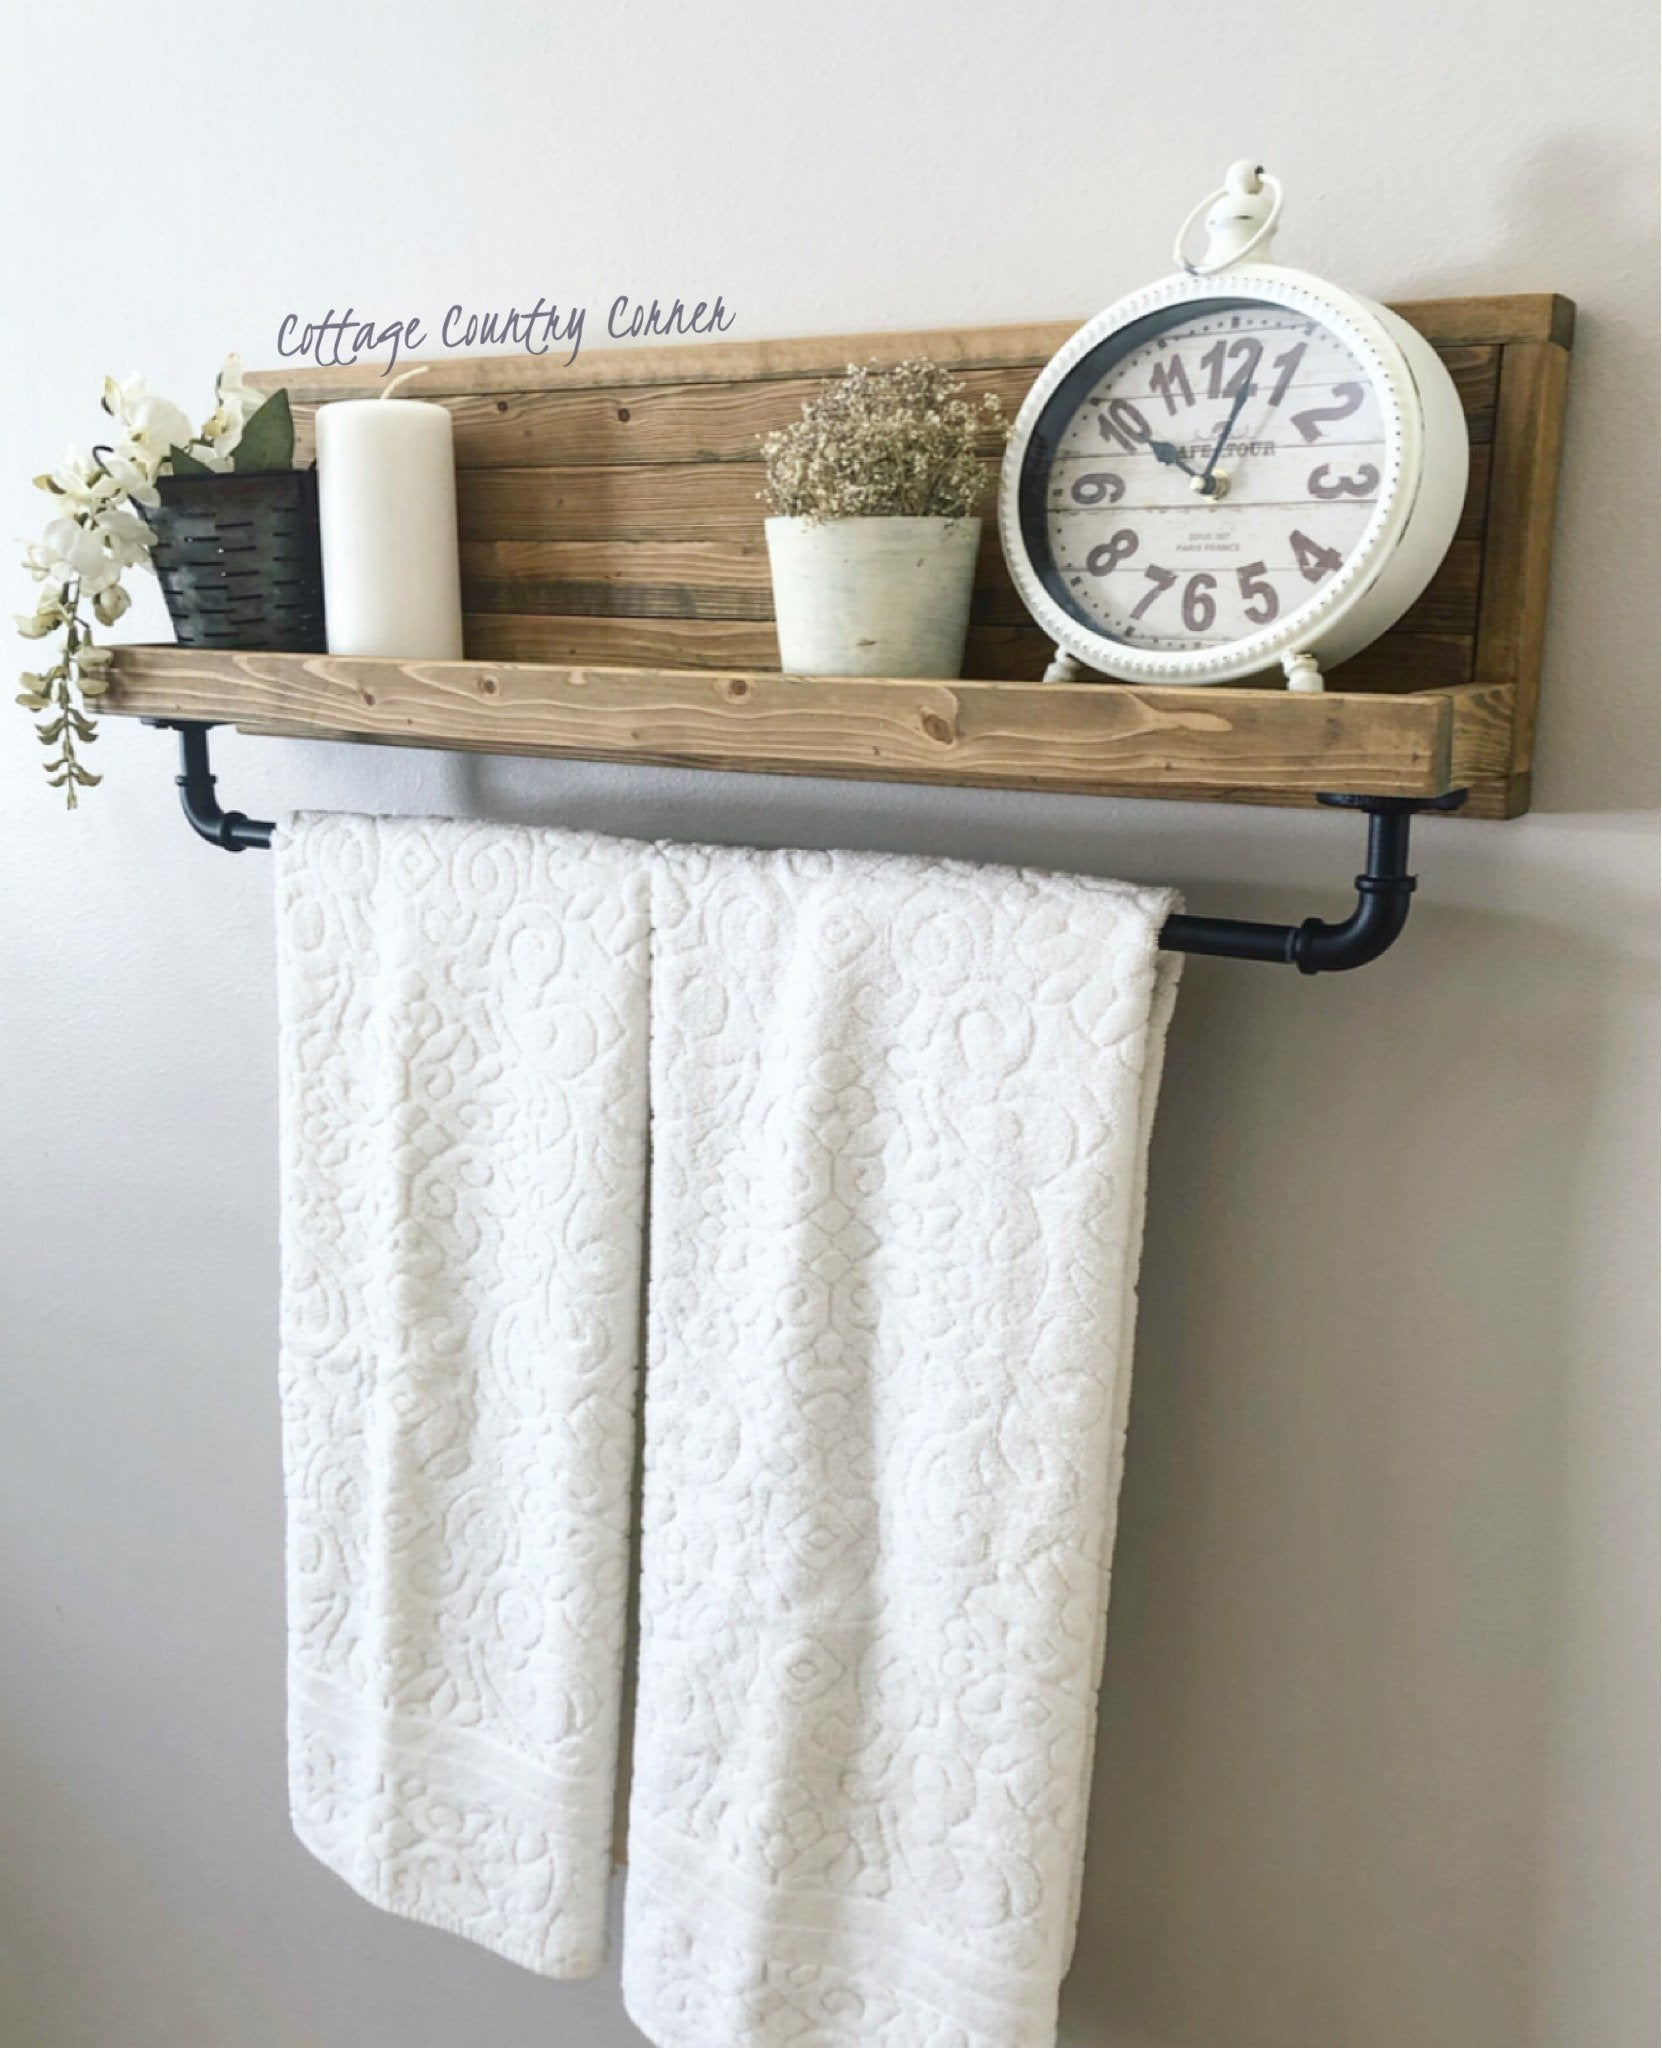 Large Towel Holder, Towel Rack, Bathroom Decor, Towel Rack, Farmhouse Bathroom, Towel Hook, Kitchen Towel Holder Industrial